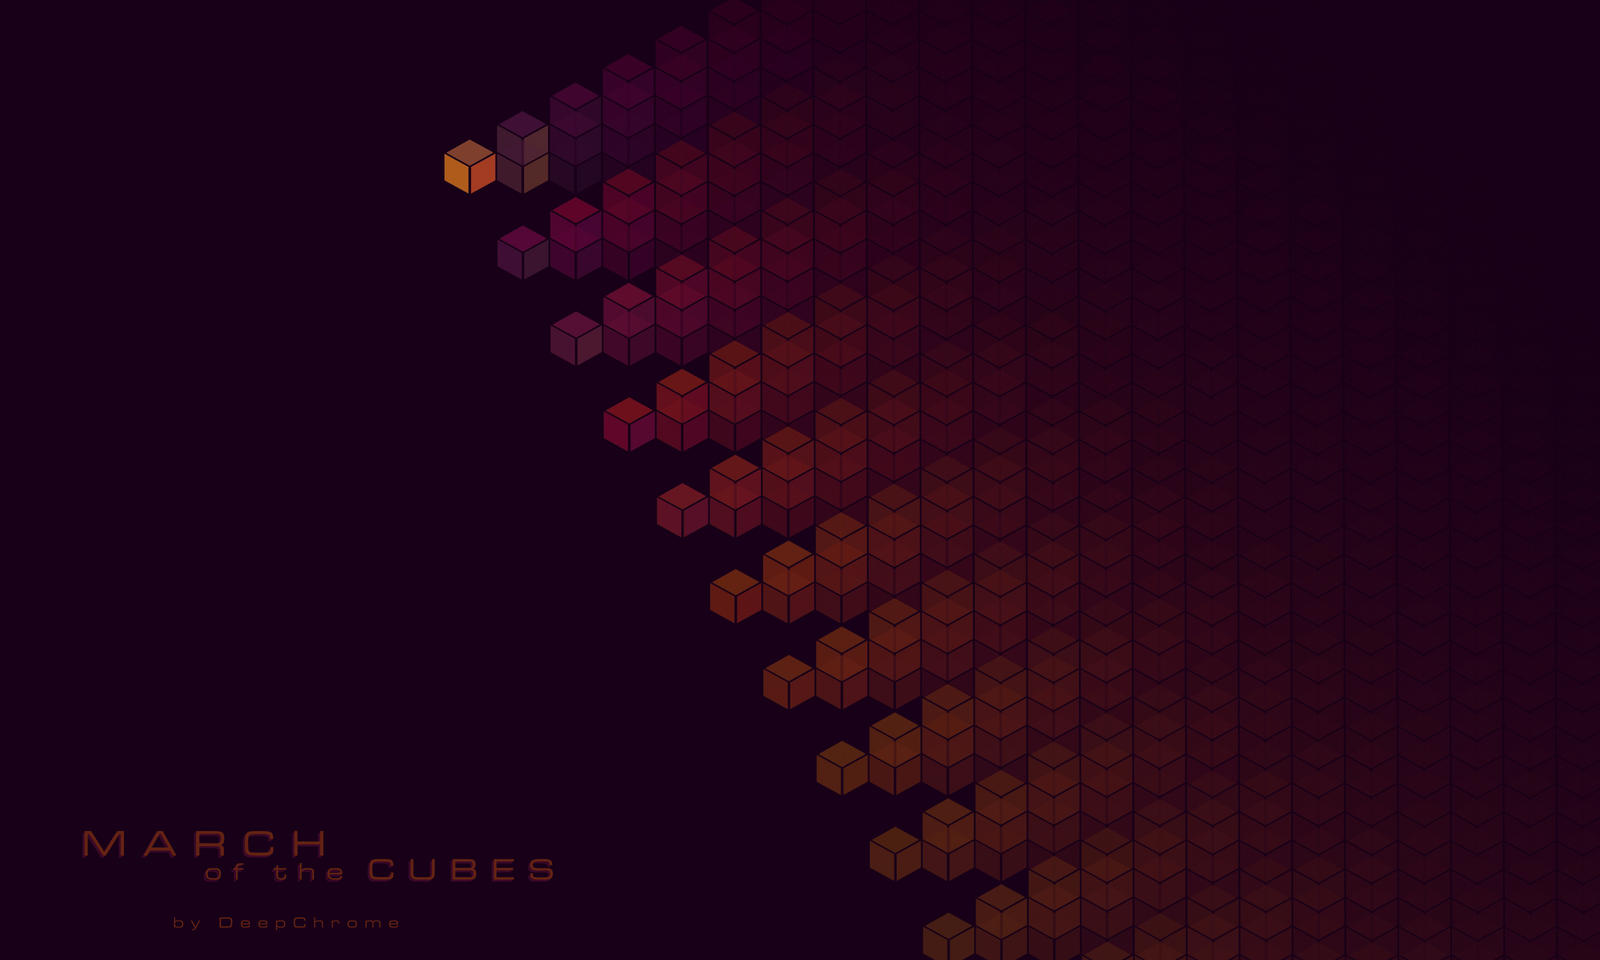 March of the Cubes by DeepChrome